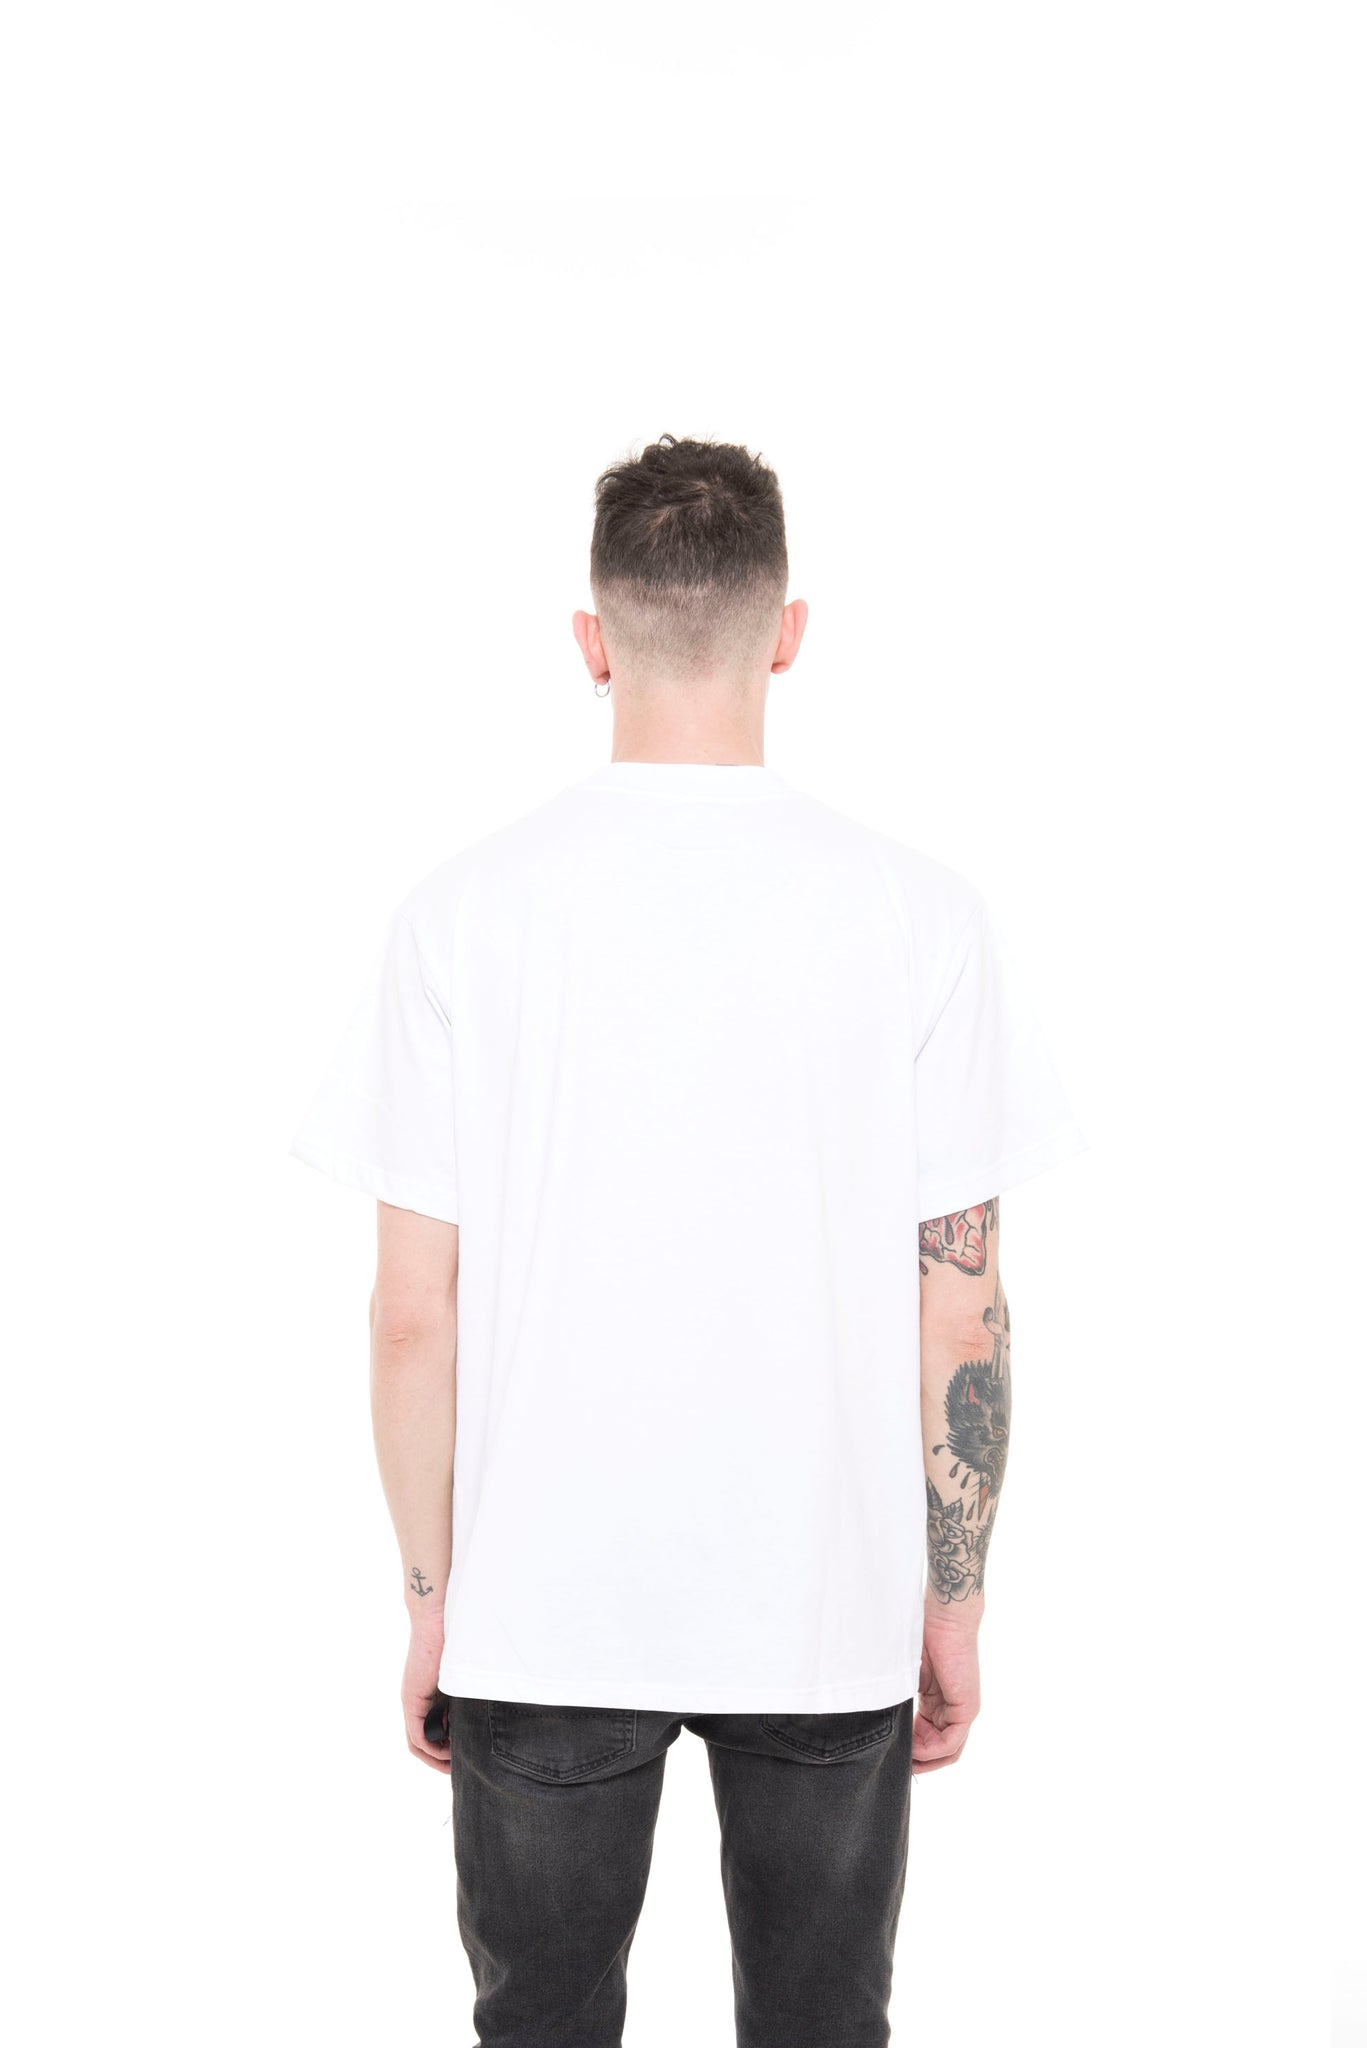 PRAY FOR US ™ - GO HOME ss19 white T-Shirt